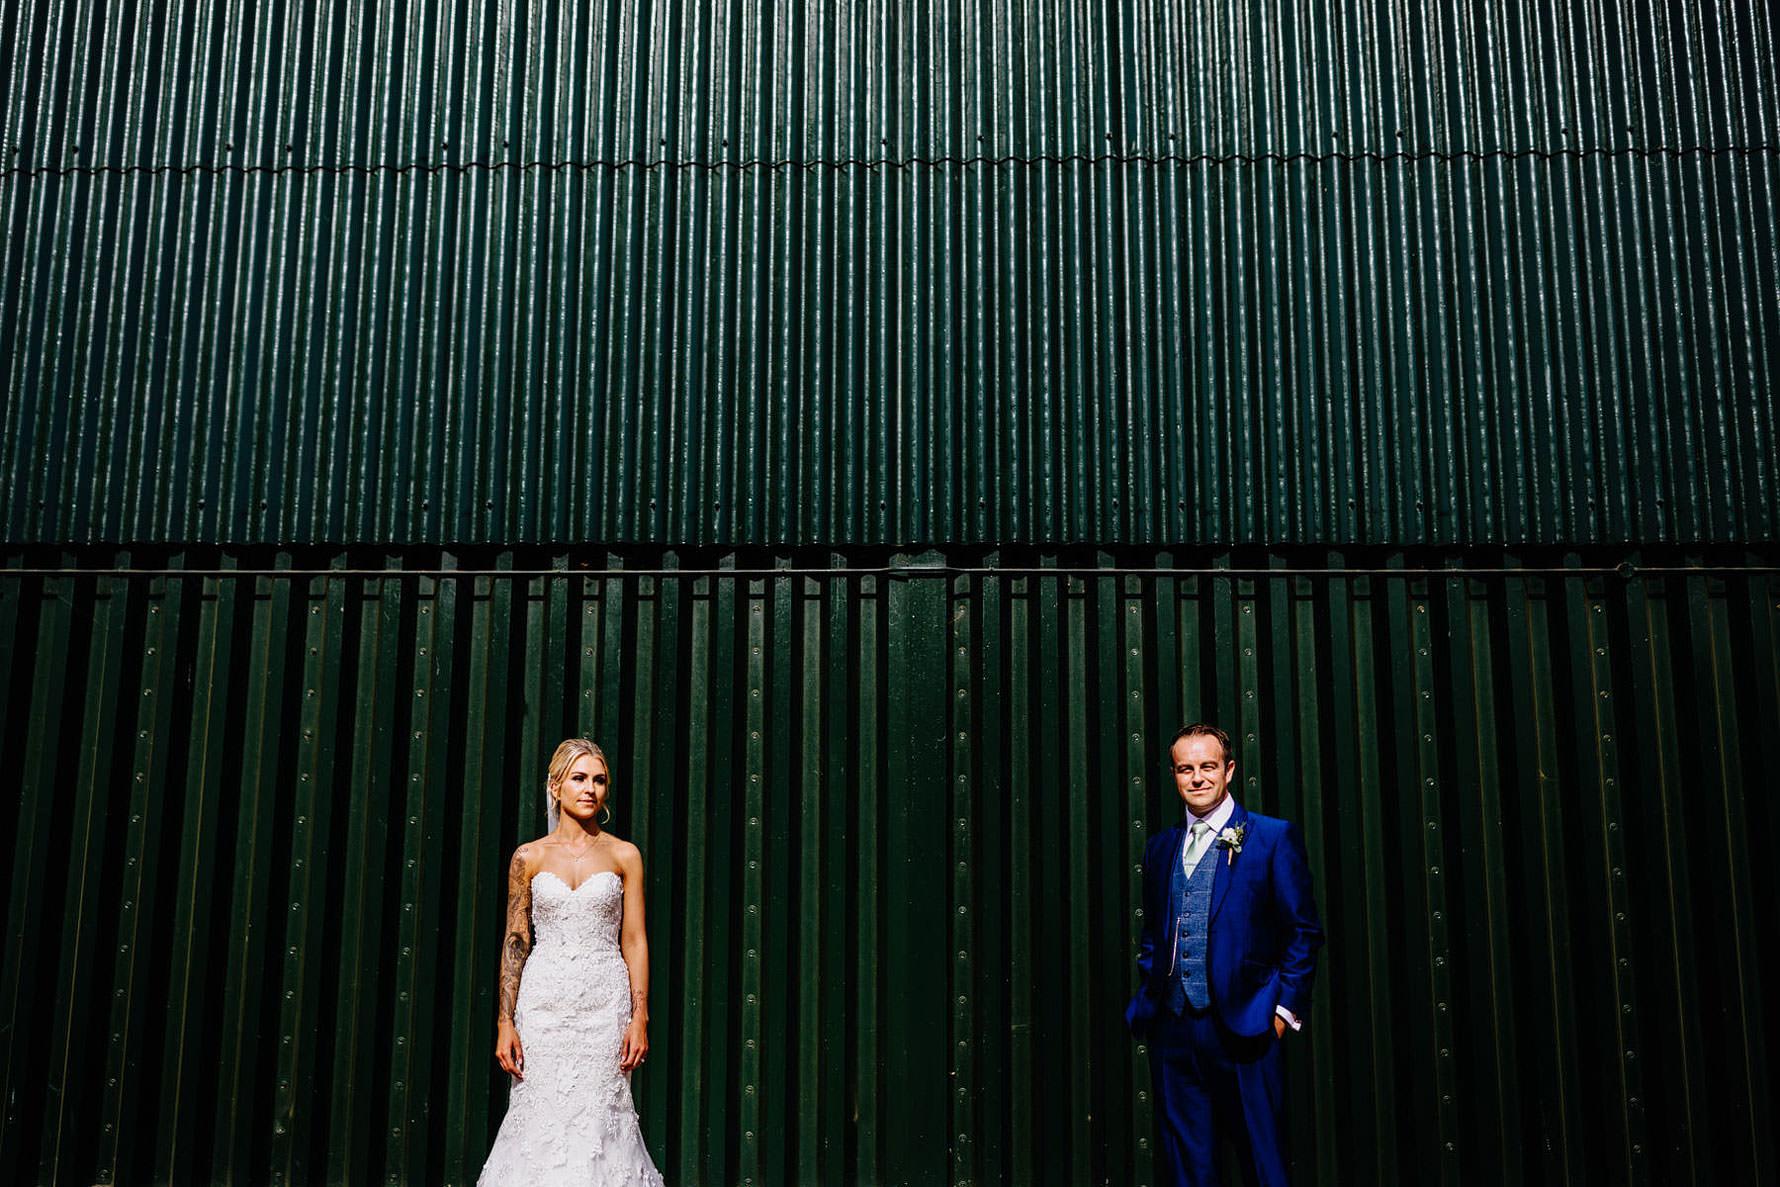 a cool photo of a bride and groom